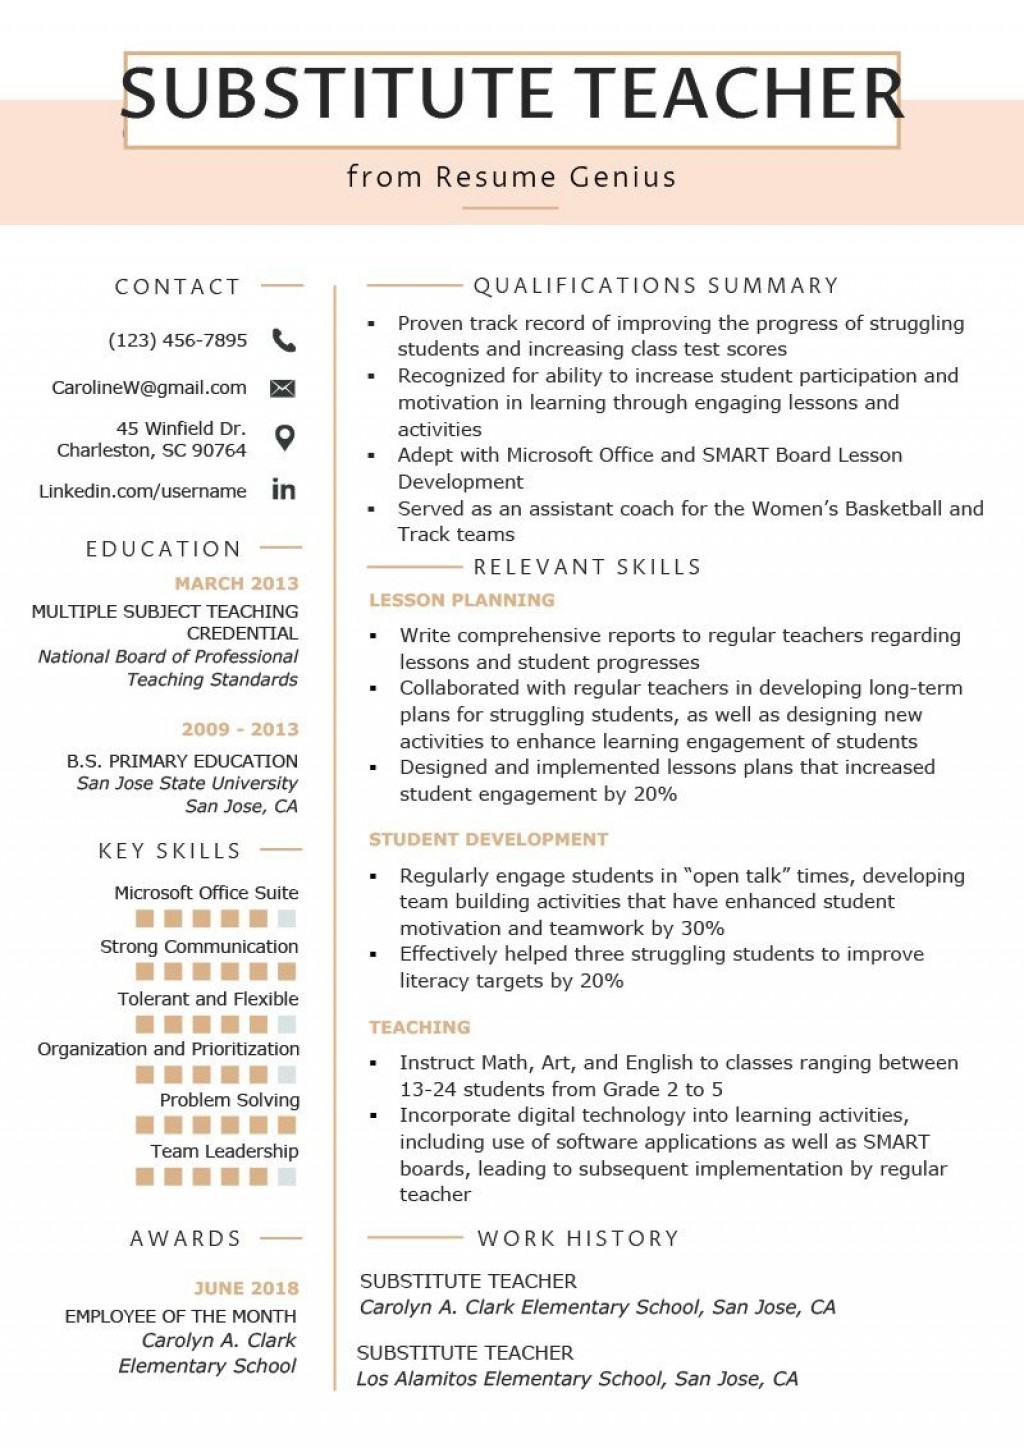 002 Stunning Resume Template For Teaching High Def  Sample Job Example Teacher Assistant In IndiaLarge